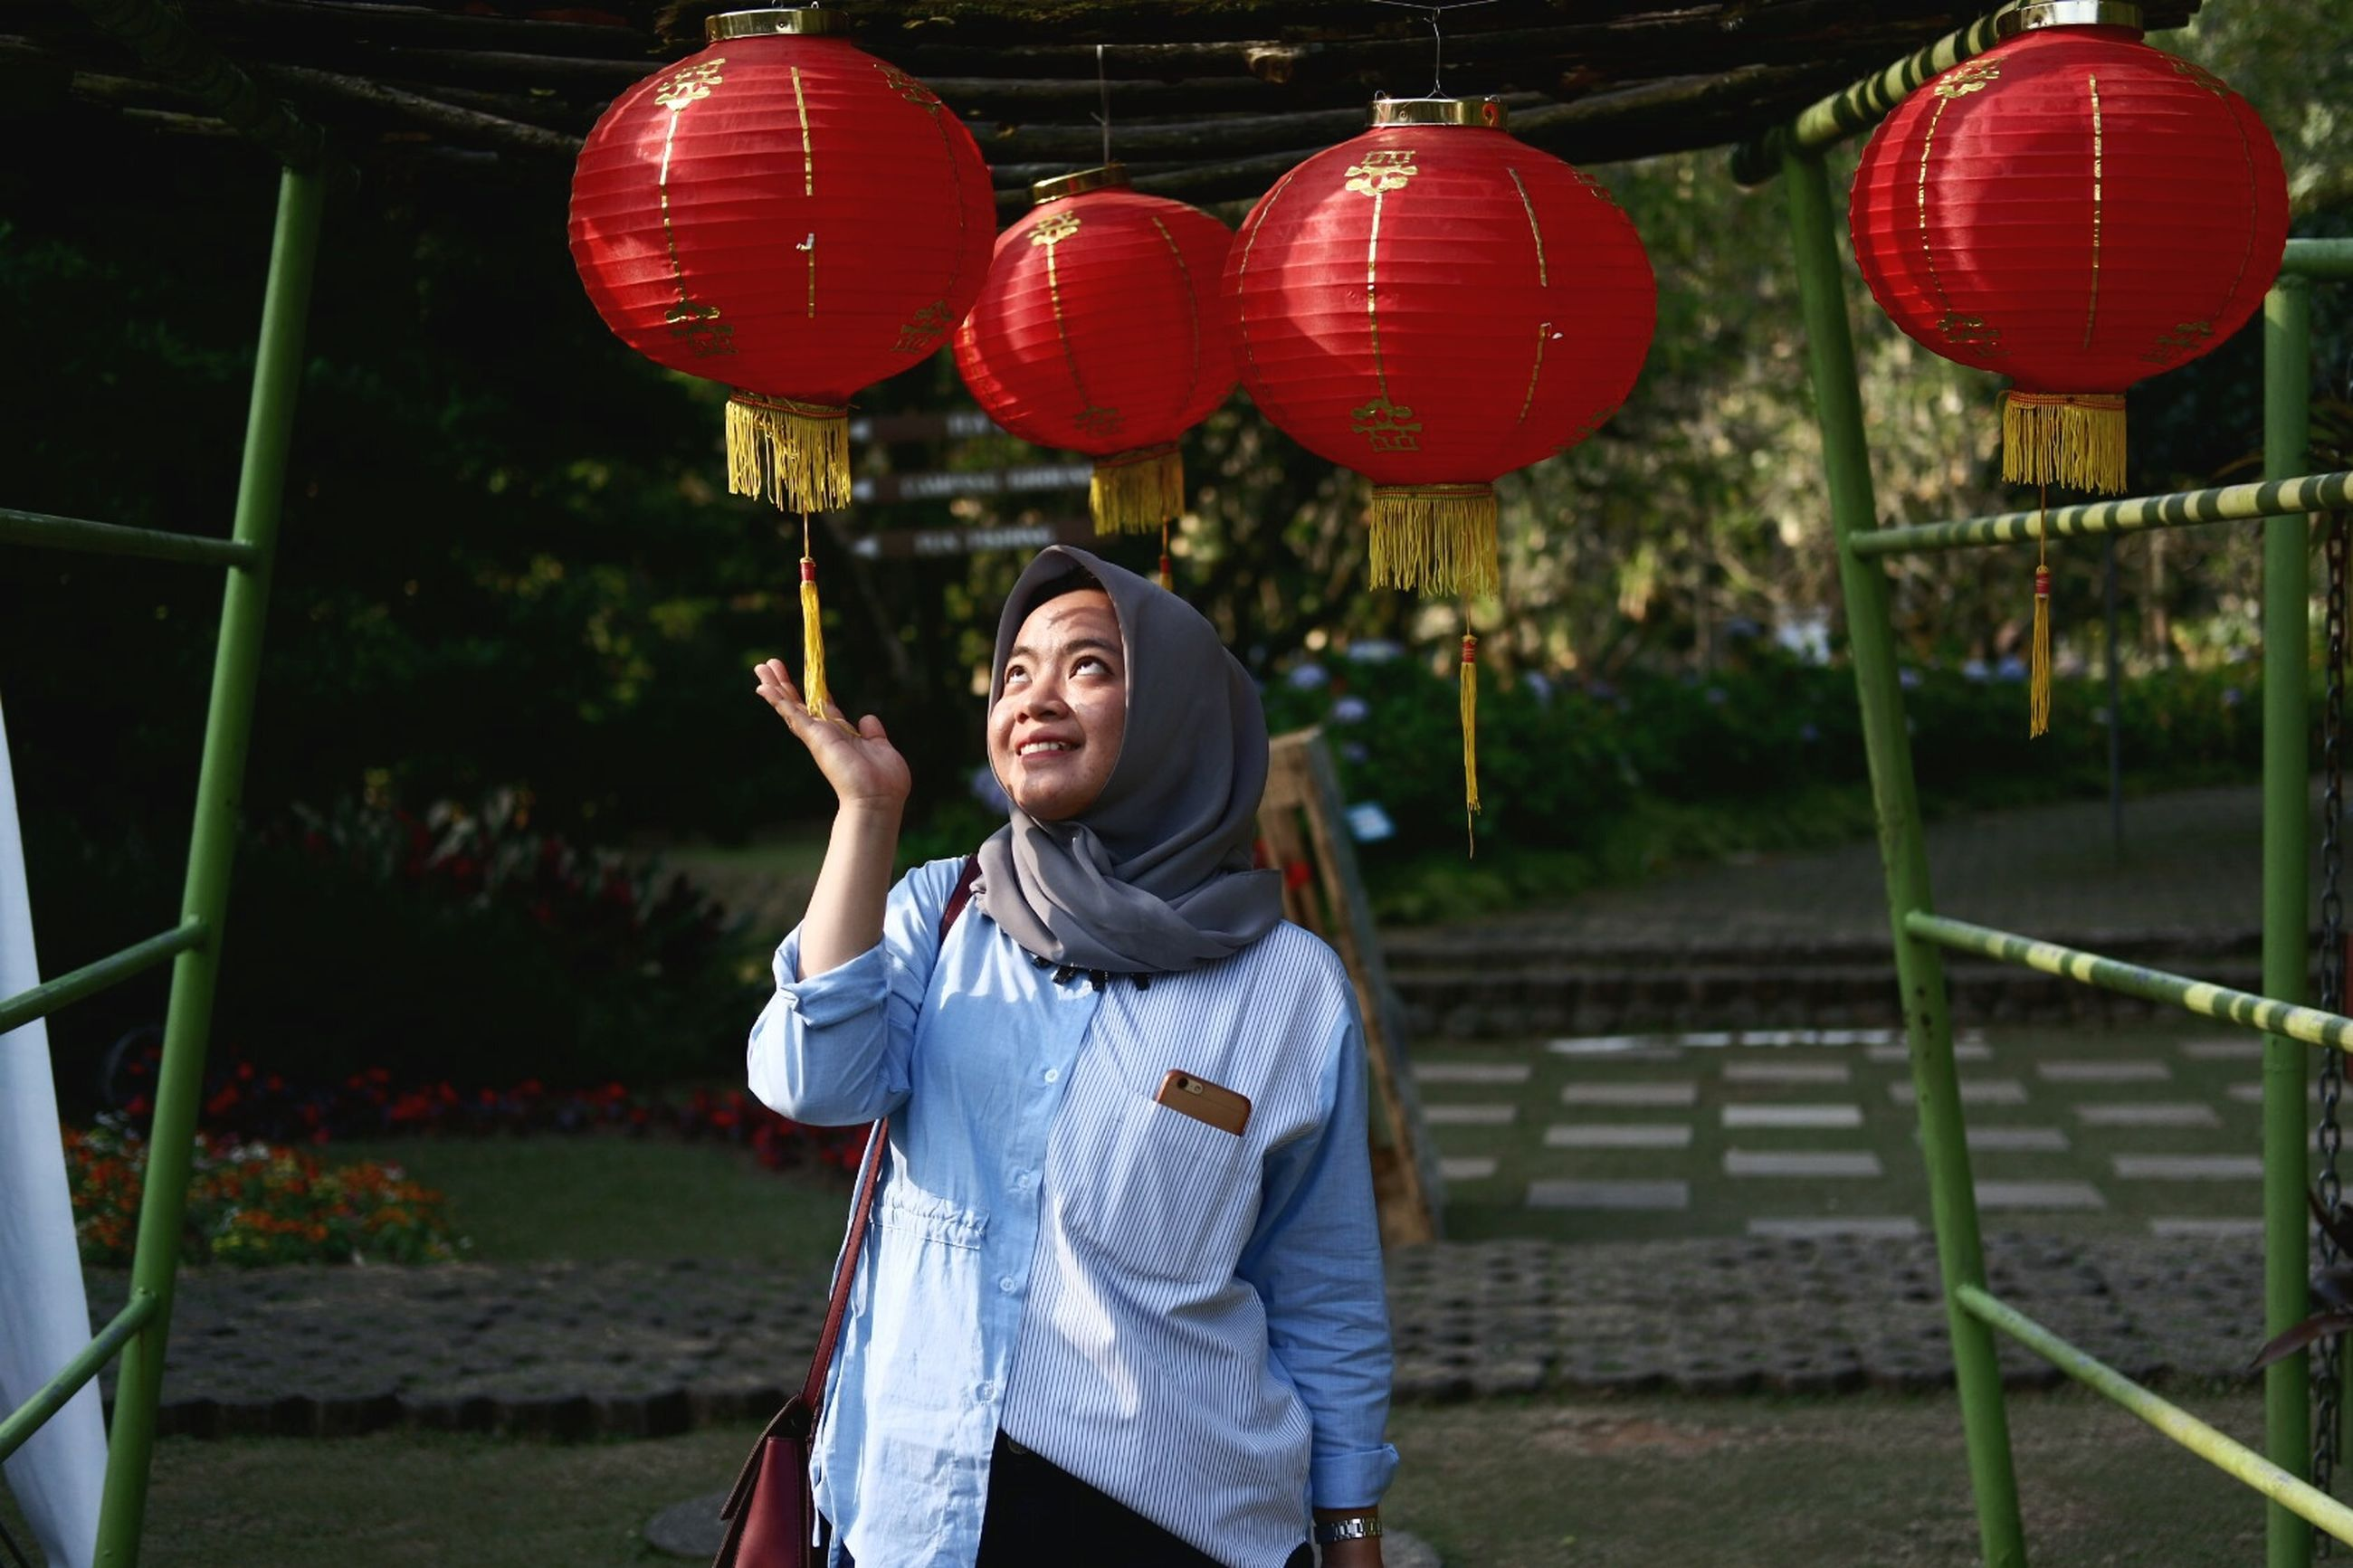 real people, one person, leisure activity, front view, standing, casual clothing, lifestyles, young adult, three quarter length, day, holding, happiness, women, red, smiling, nature, balloon, emotion, outdoors, chinese lantern